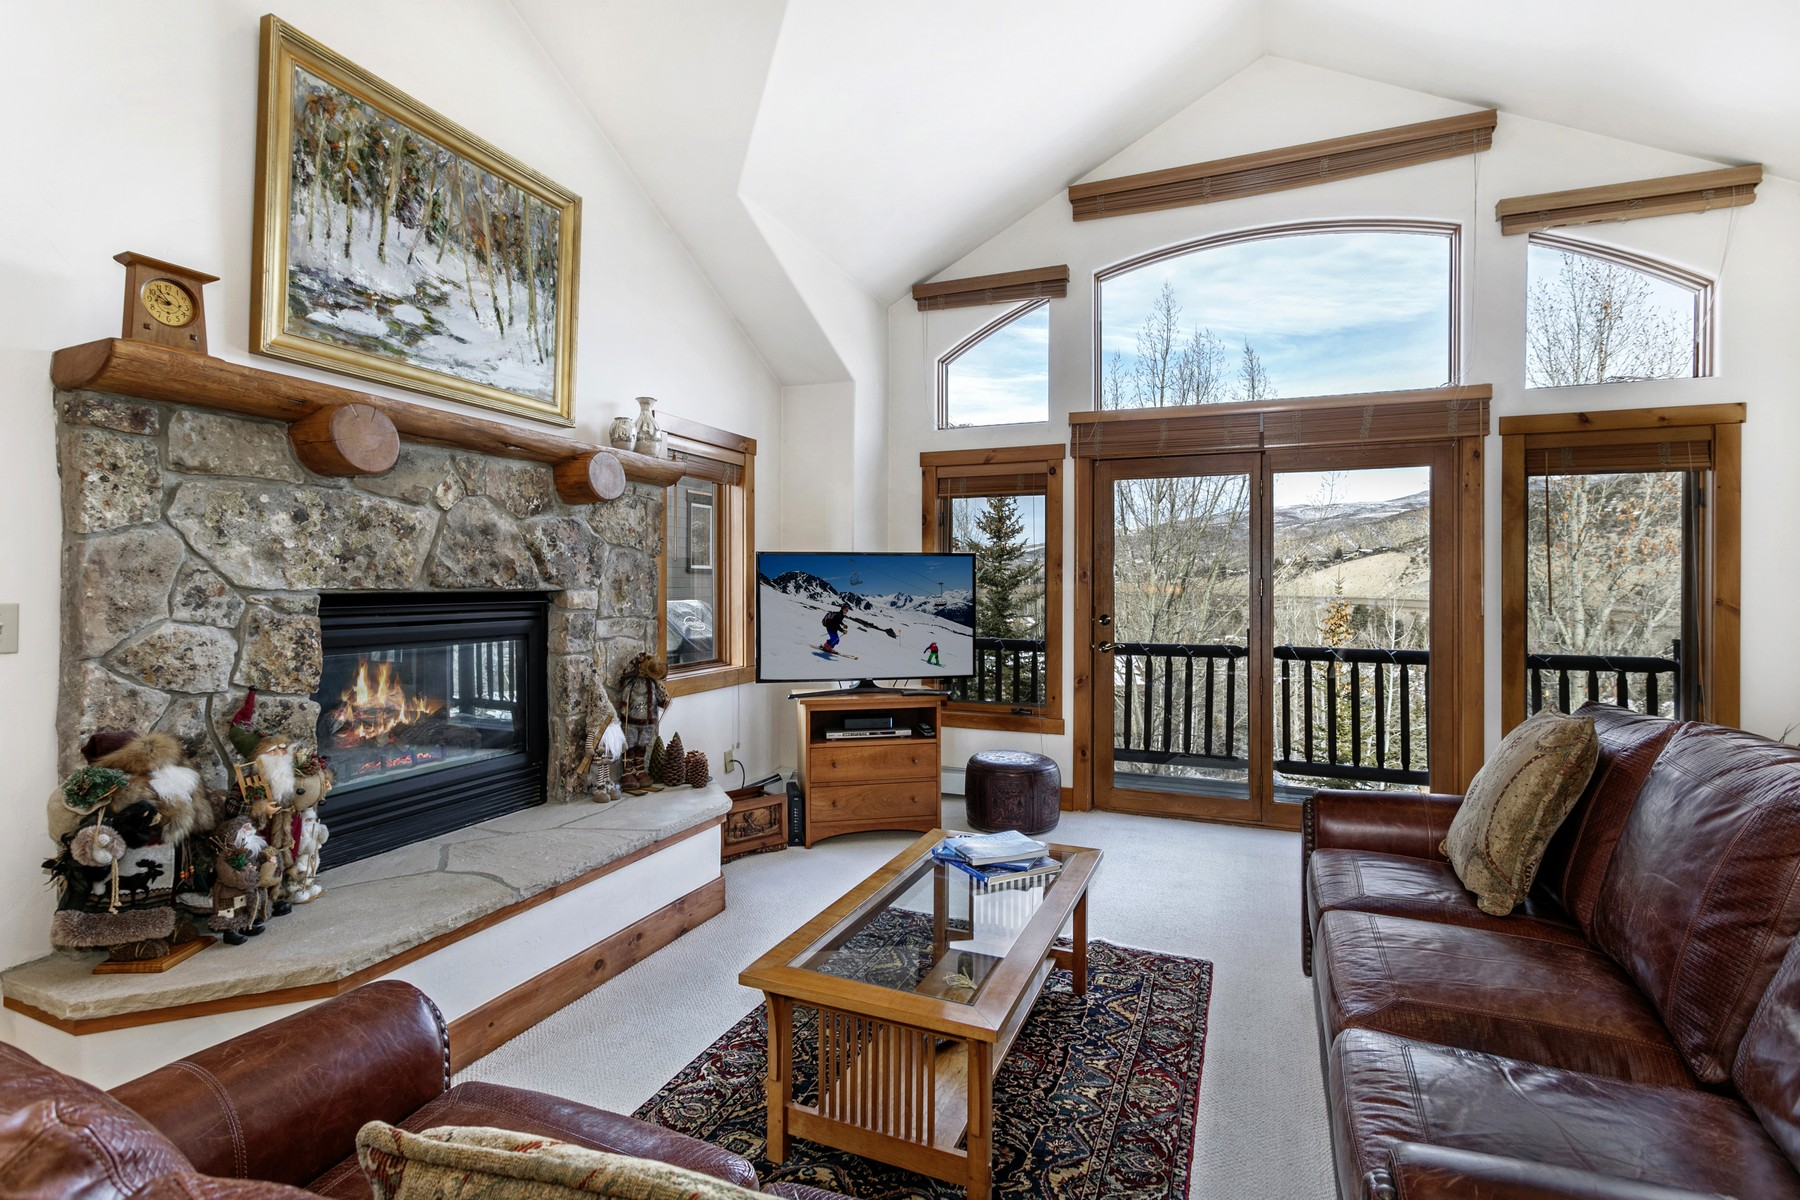 Duplex for Active at Beautifully finished convenient location duplex in a quaint gated enclave 113 Knudson Ranch Road Edwards, Colorado 81632 United States